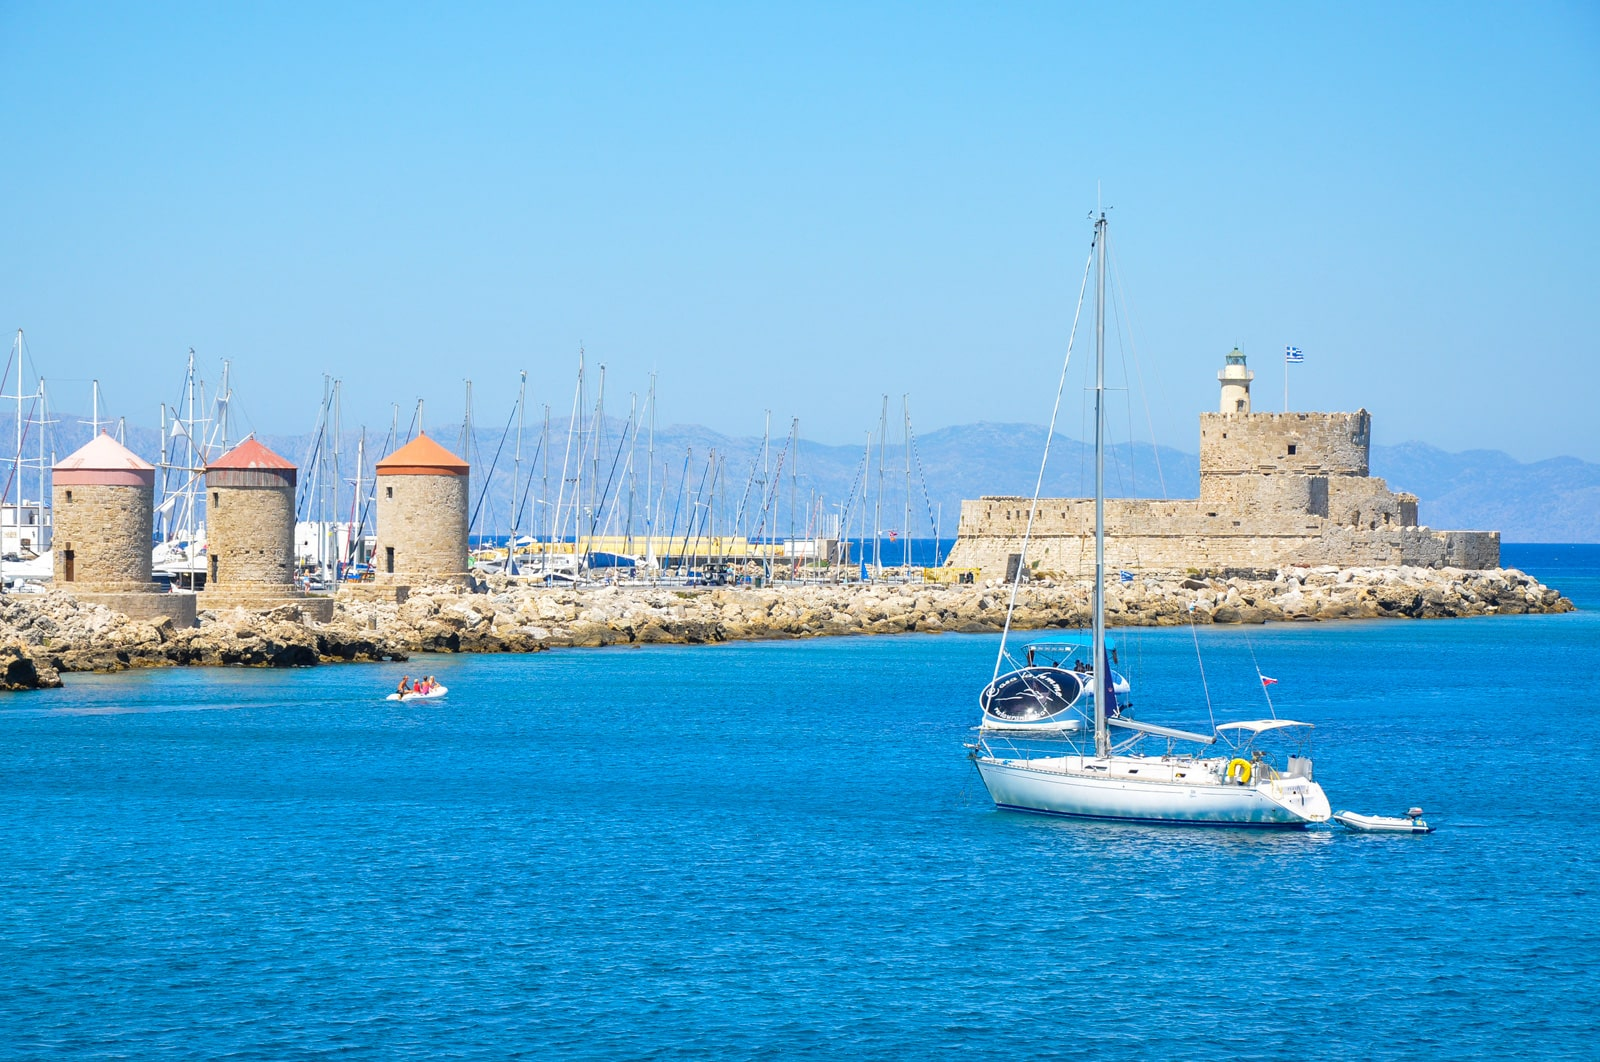 The harbor of Rhodes. Photo by Jorge Lascar.